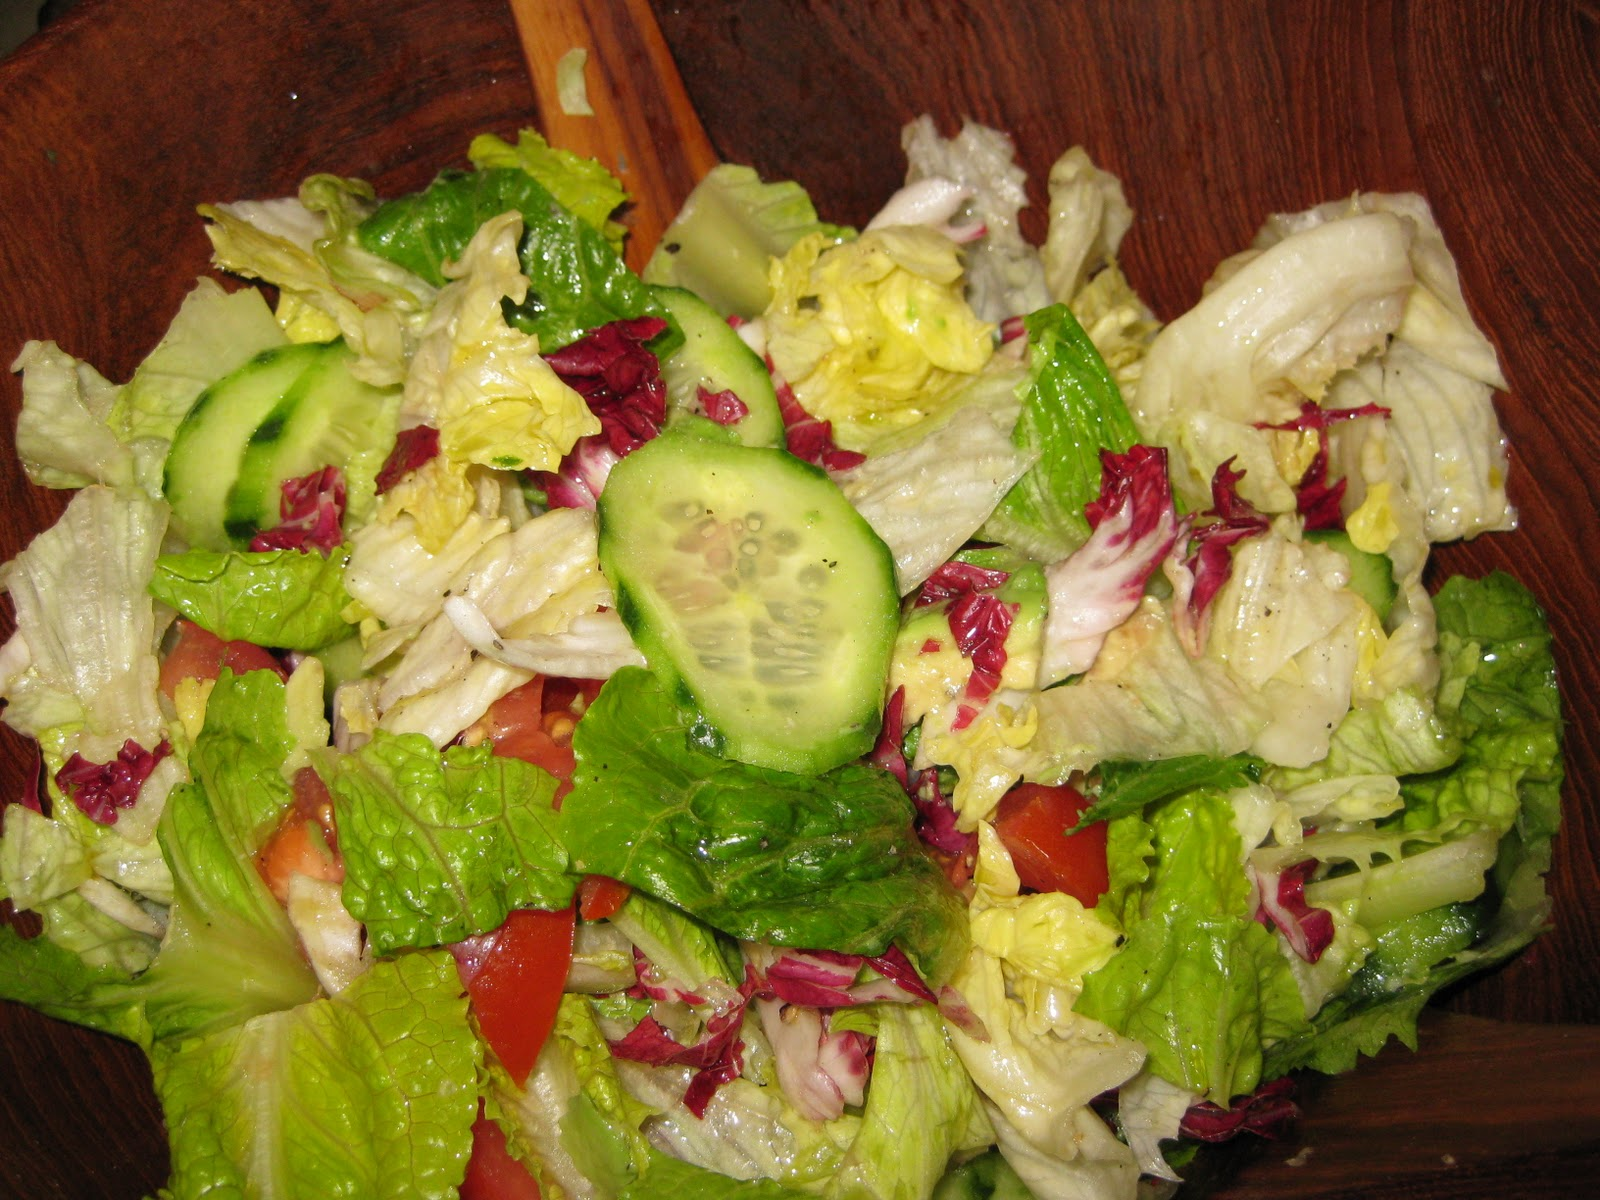 MIXED RAW GREENS SALAD WITH ITALIAN DRESSING